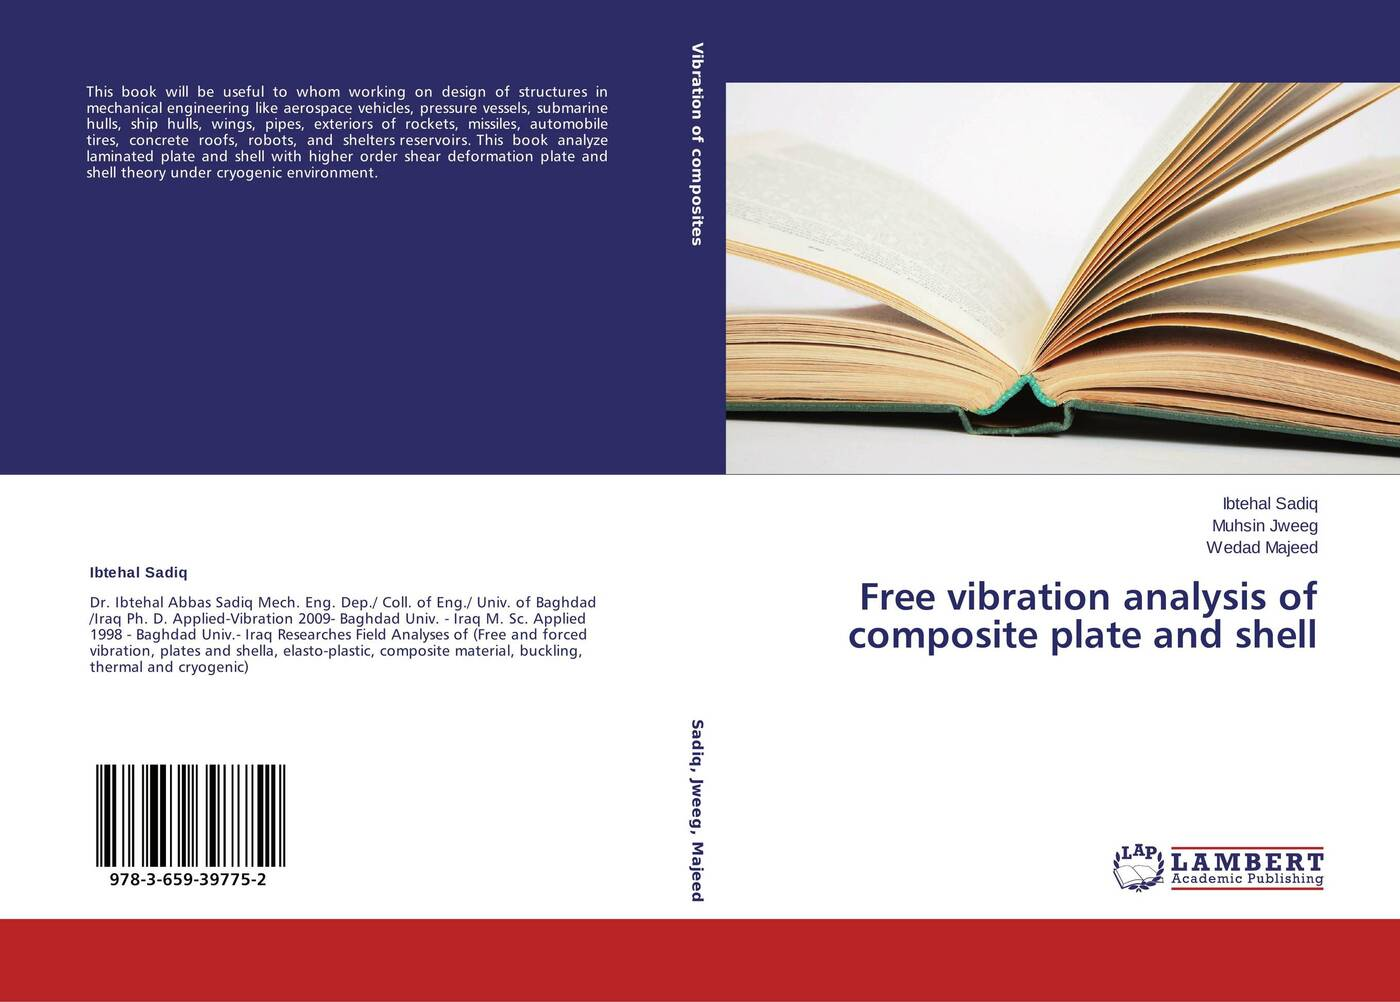 Ibtehal Sadiq,Muhsin Jweeg and Wedad Majeed Free vibration analysis of composite plate and shell abdelrady okasha elnady and hani negm analysis of composite shell structures using chebyshev series